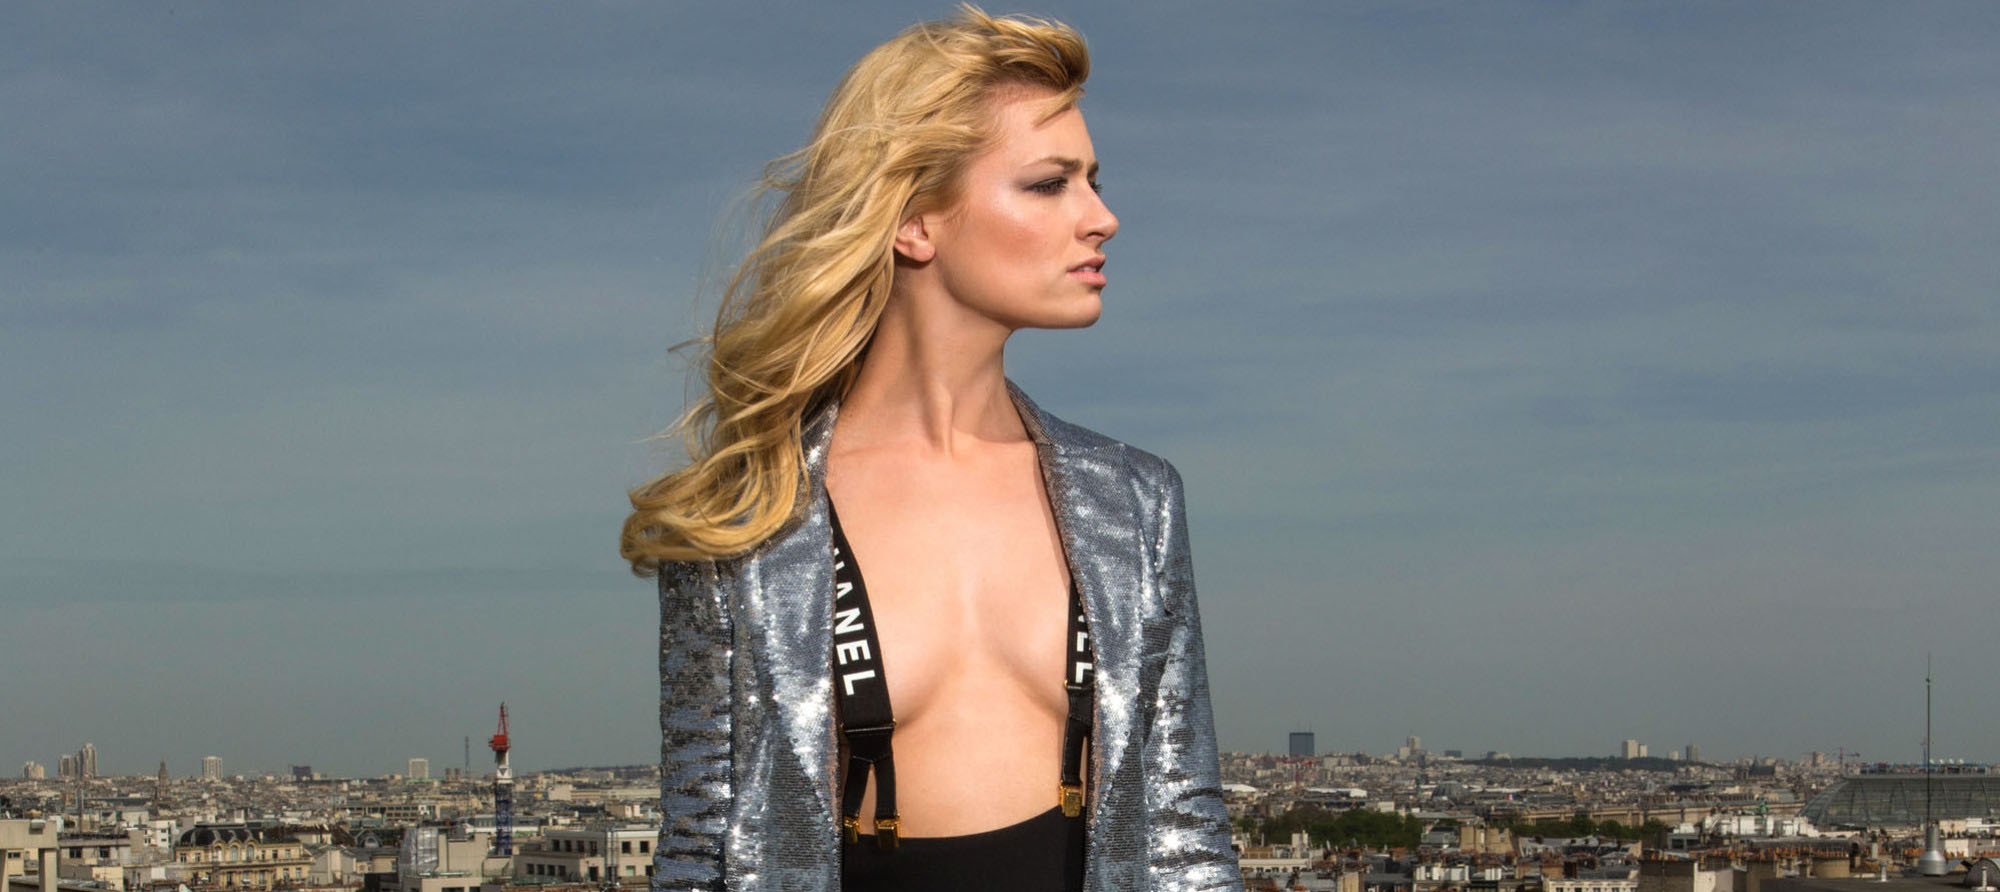 Beth Behrs Calendario.Lady Of The Week Bethbehrs Series Over Bros